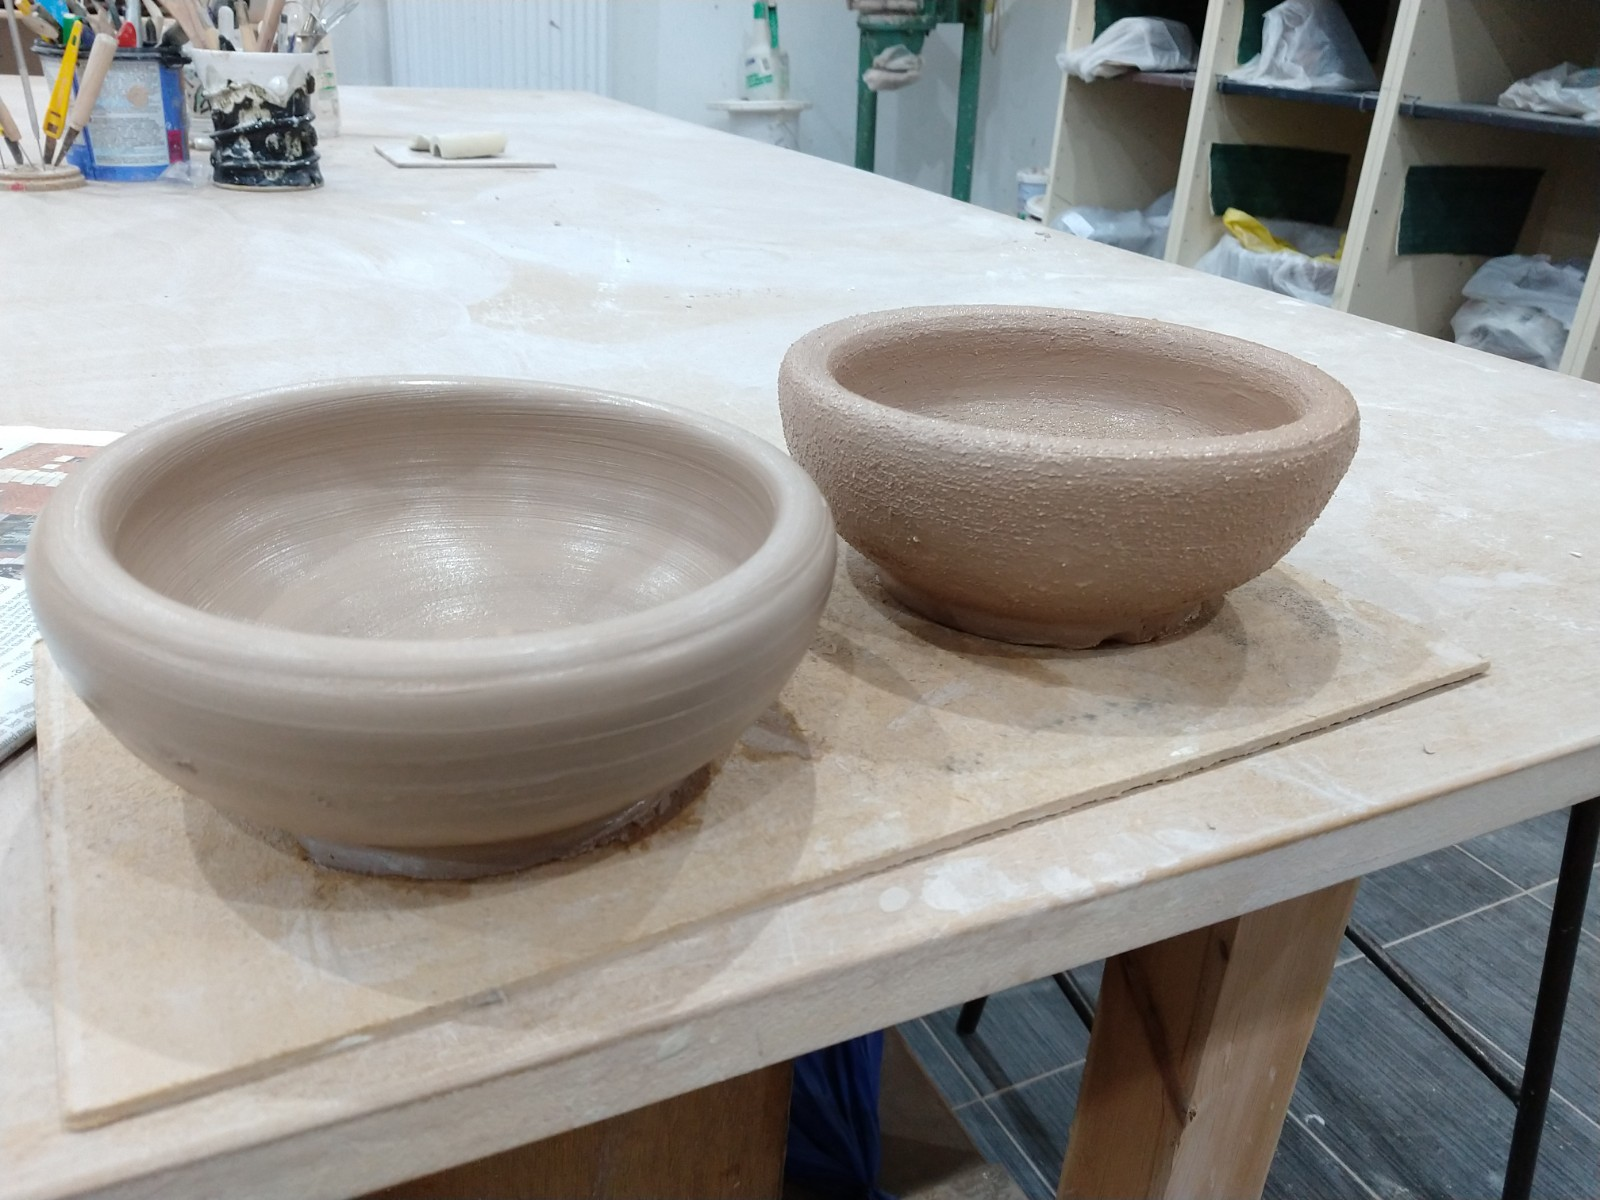 Prototype bowls for Gaza cooking